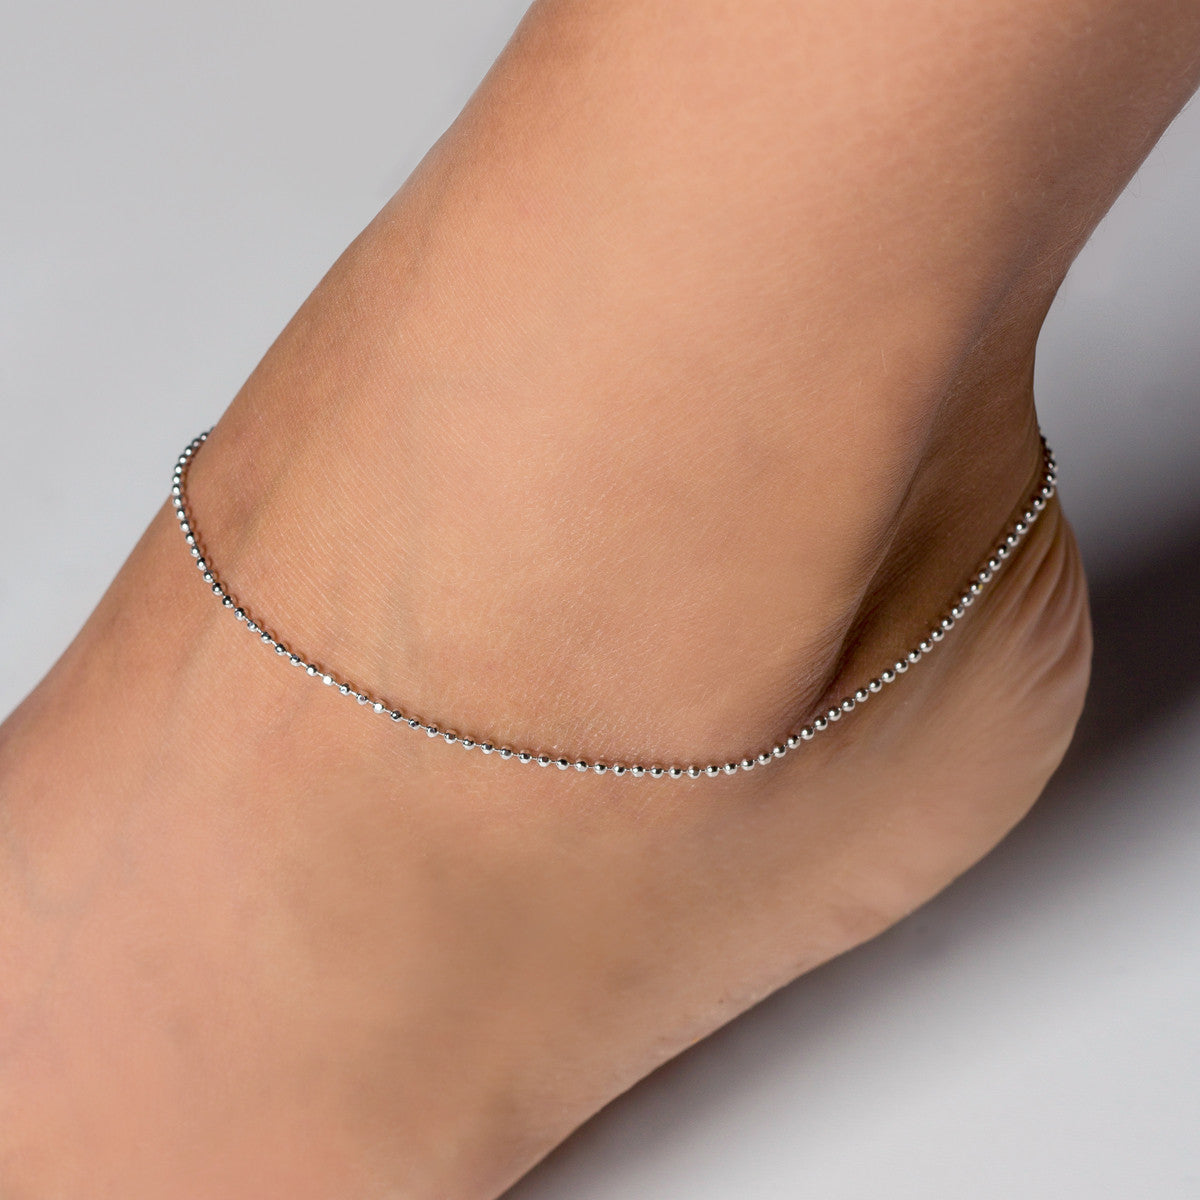 italy bracelet bracelets ankle singapore jewelry chain sterling cool sstr anklet twisted bling silver